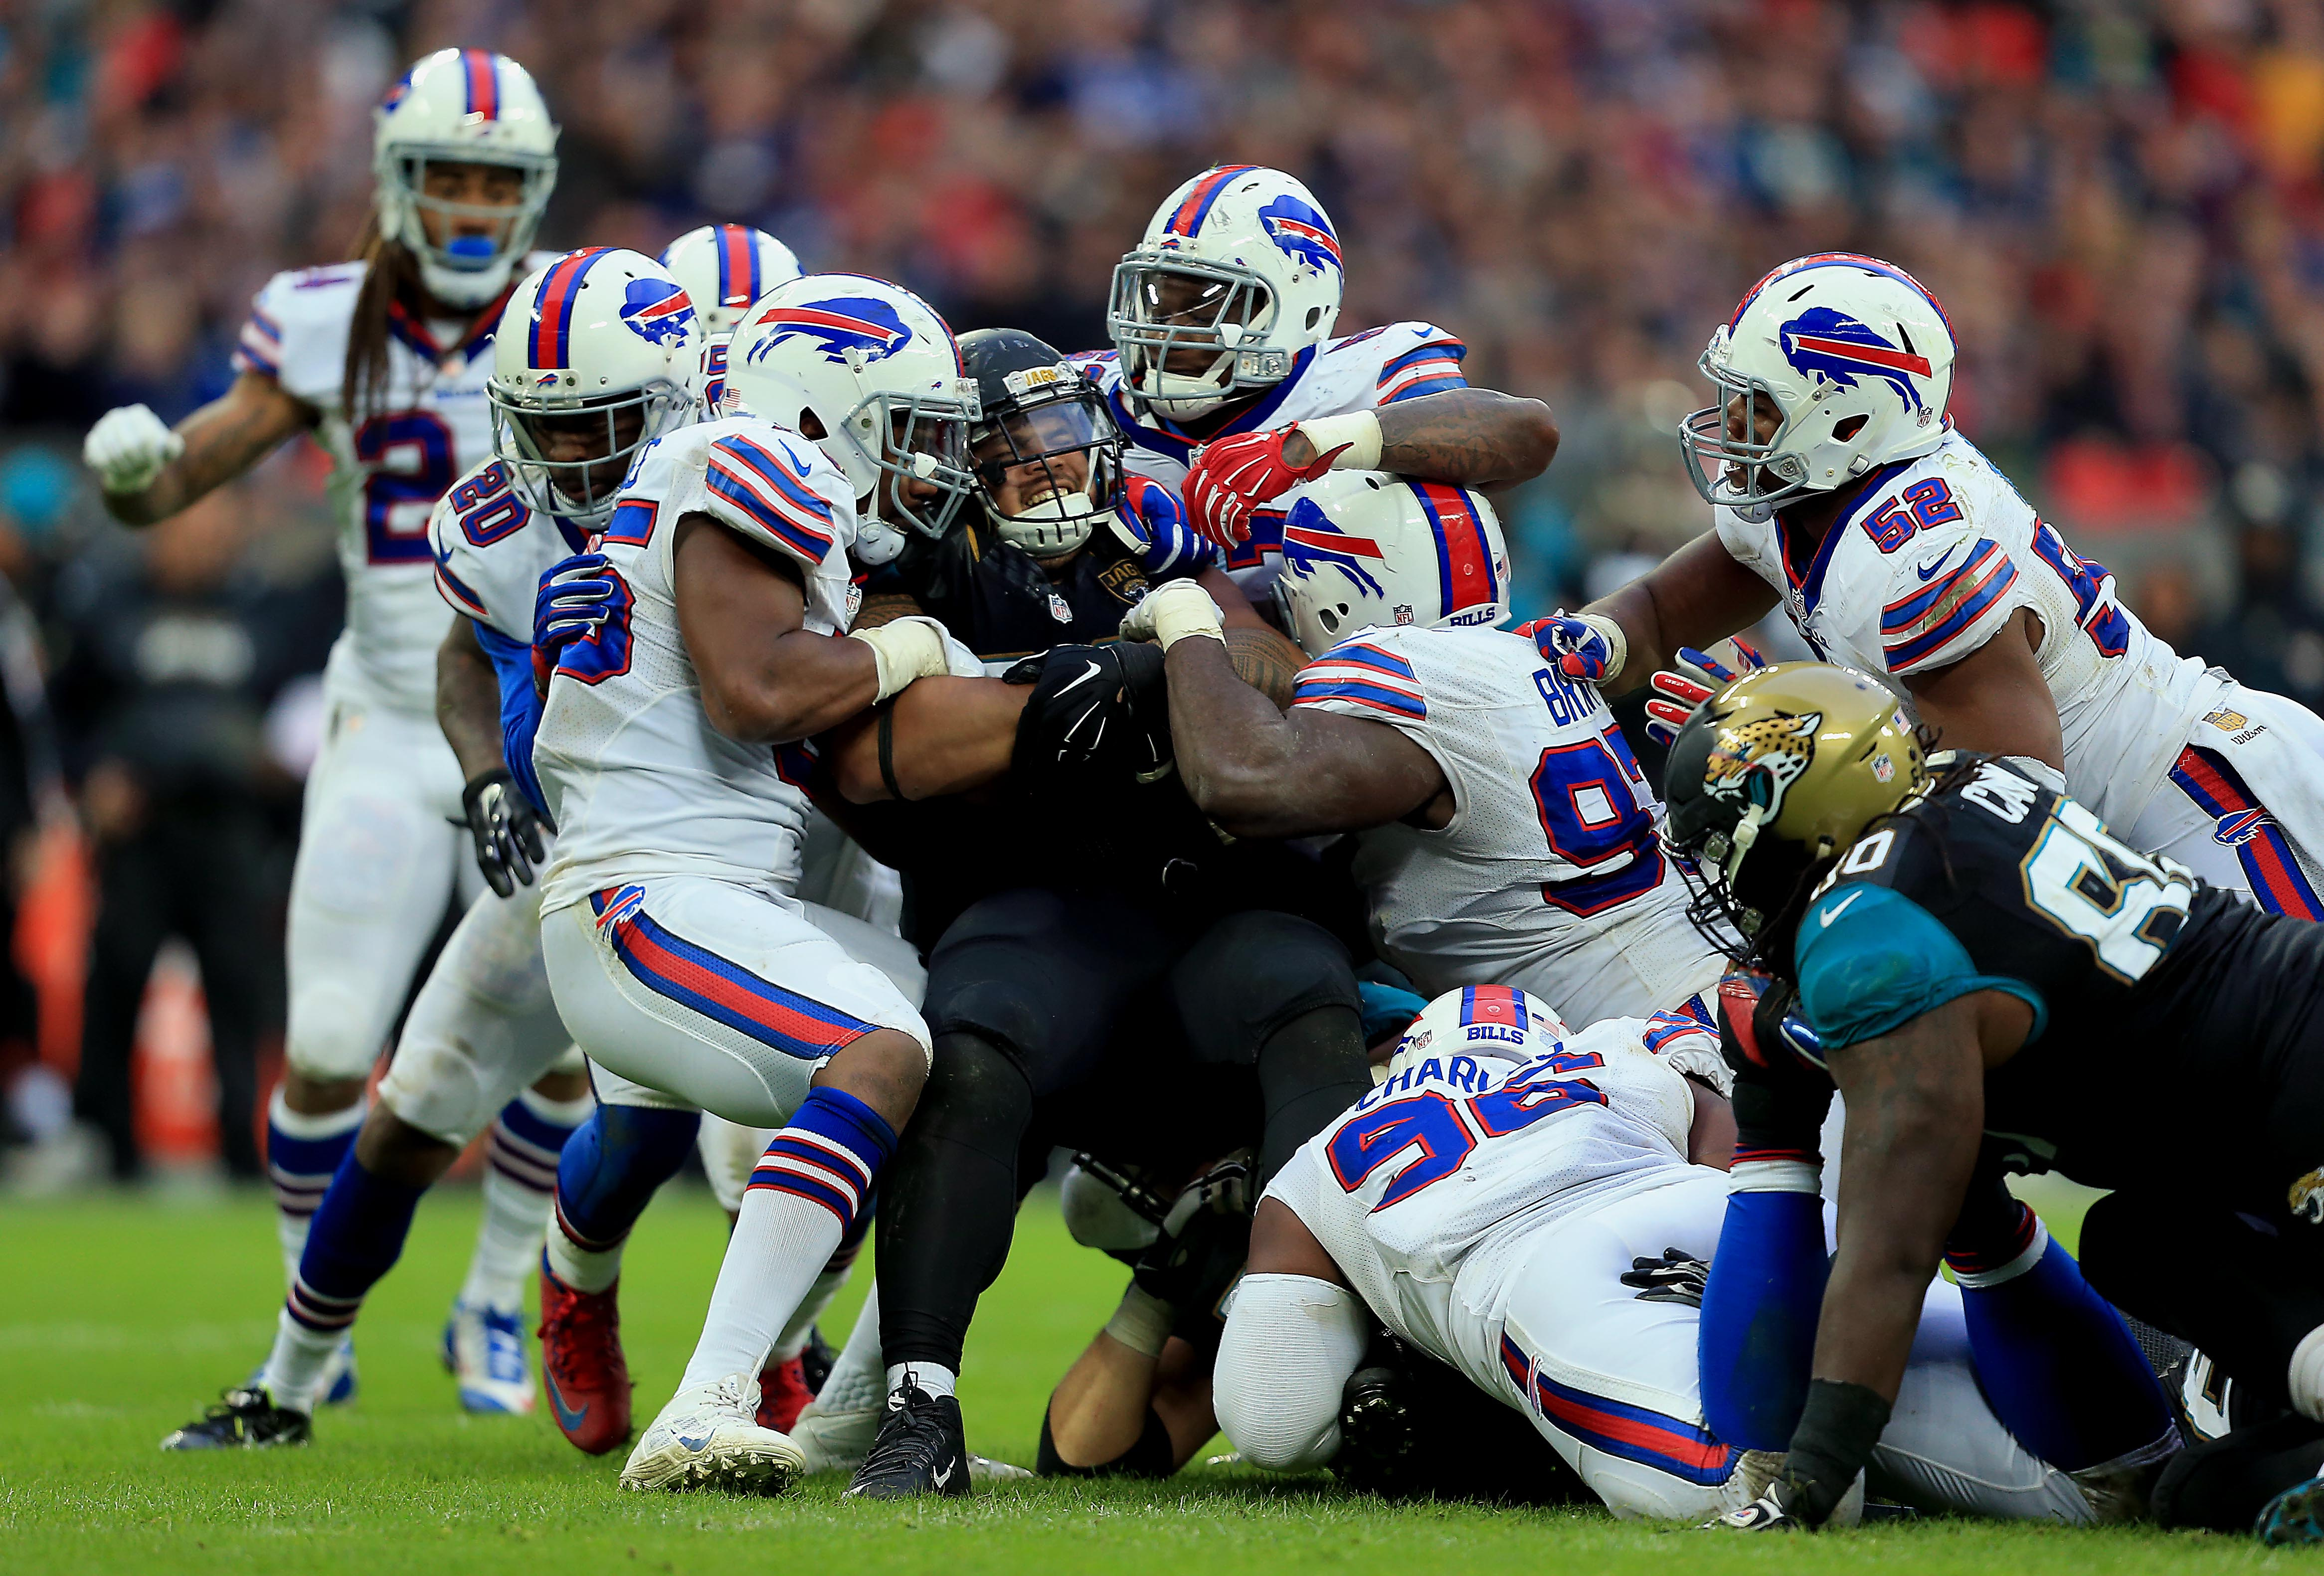 Jacksonville Jaguars' Tyson Alualu (#93) is tackled during an NFL football game against the Buffalo Bills on Oct. 25, 2015 at Wembley Stadium in London.